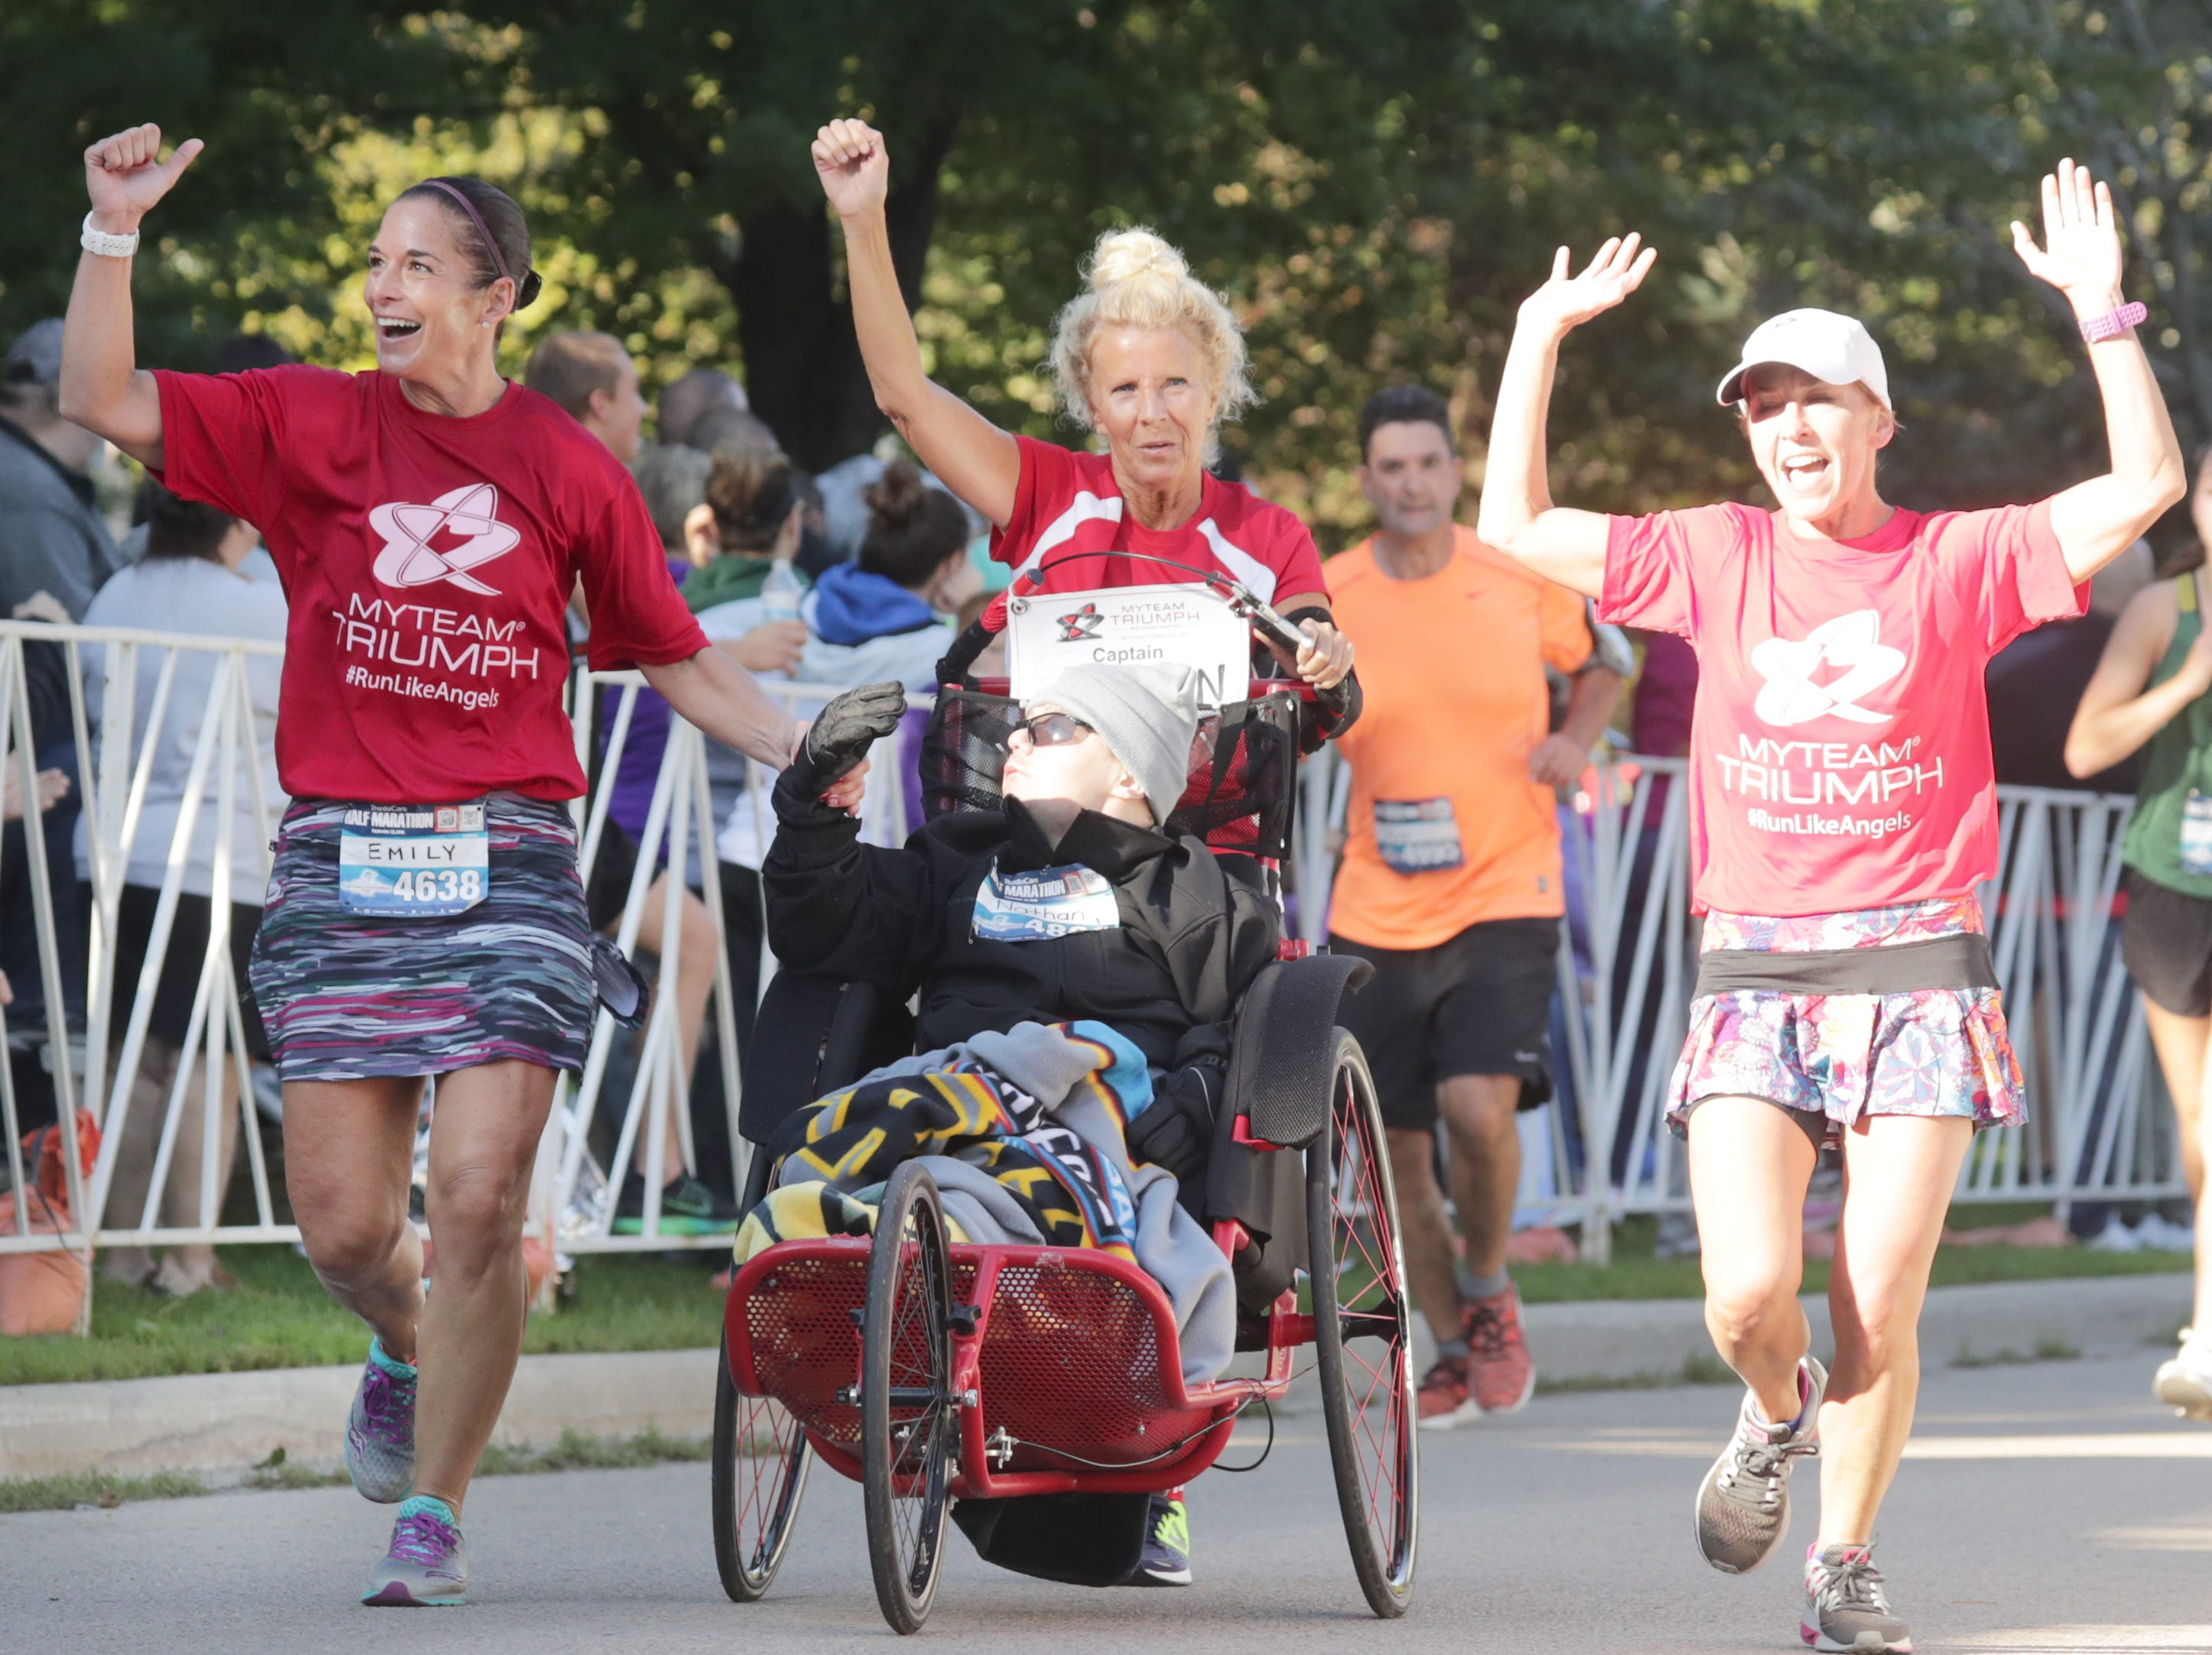 The 28th annual Community First Fox Cities Marathon on Sunday, September 23, 2018, in Neenah Wis. Wm. Glasheen/USA TODAY NETWORK-Wisconsin.